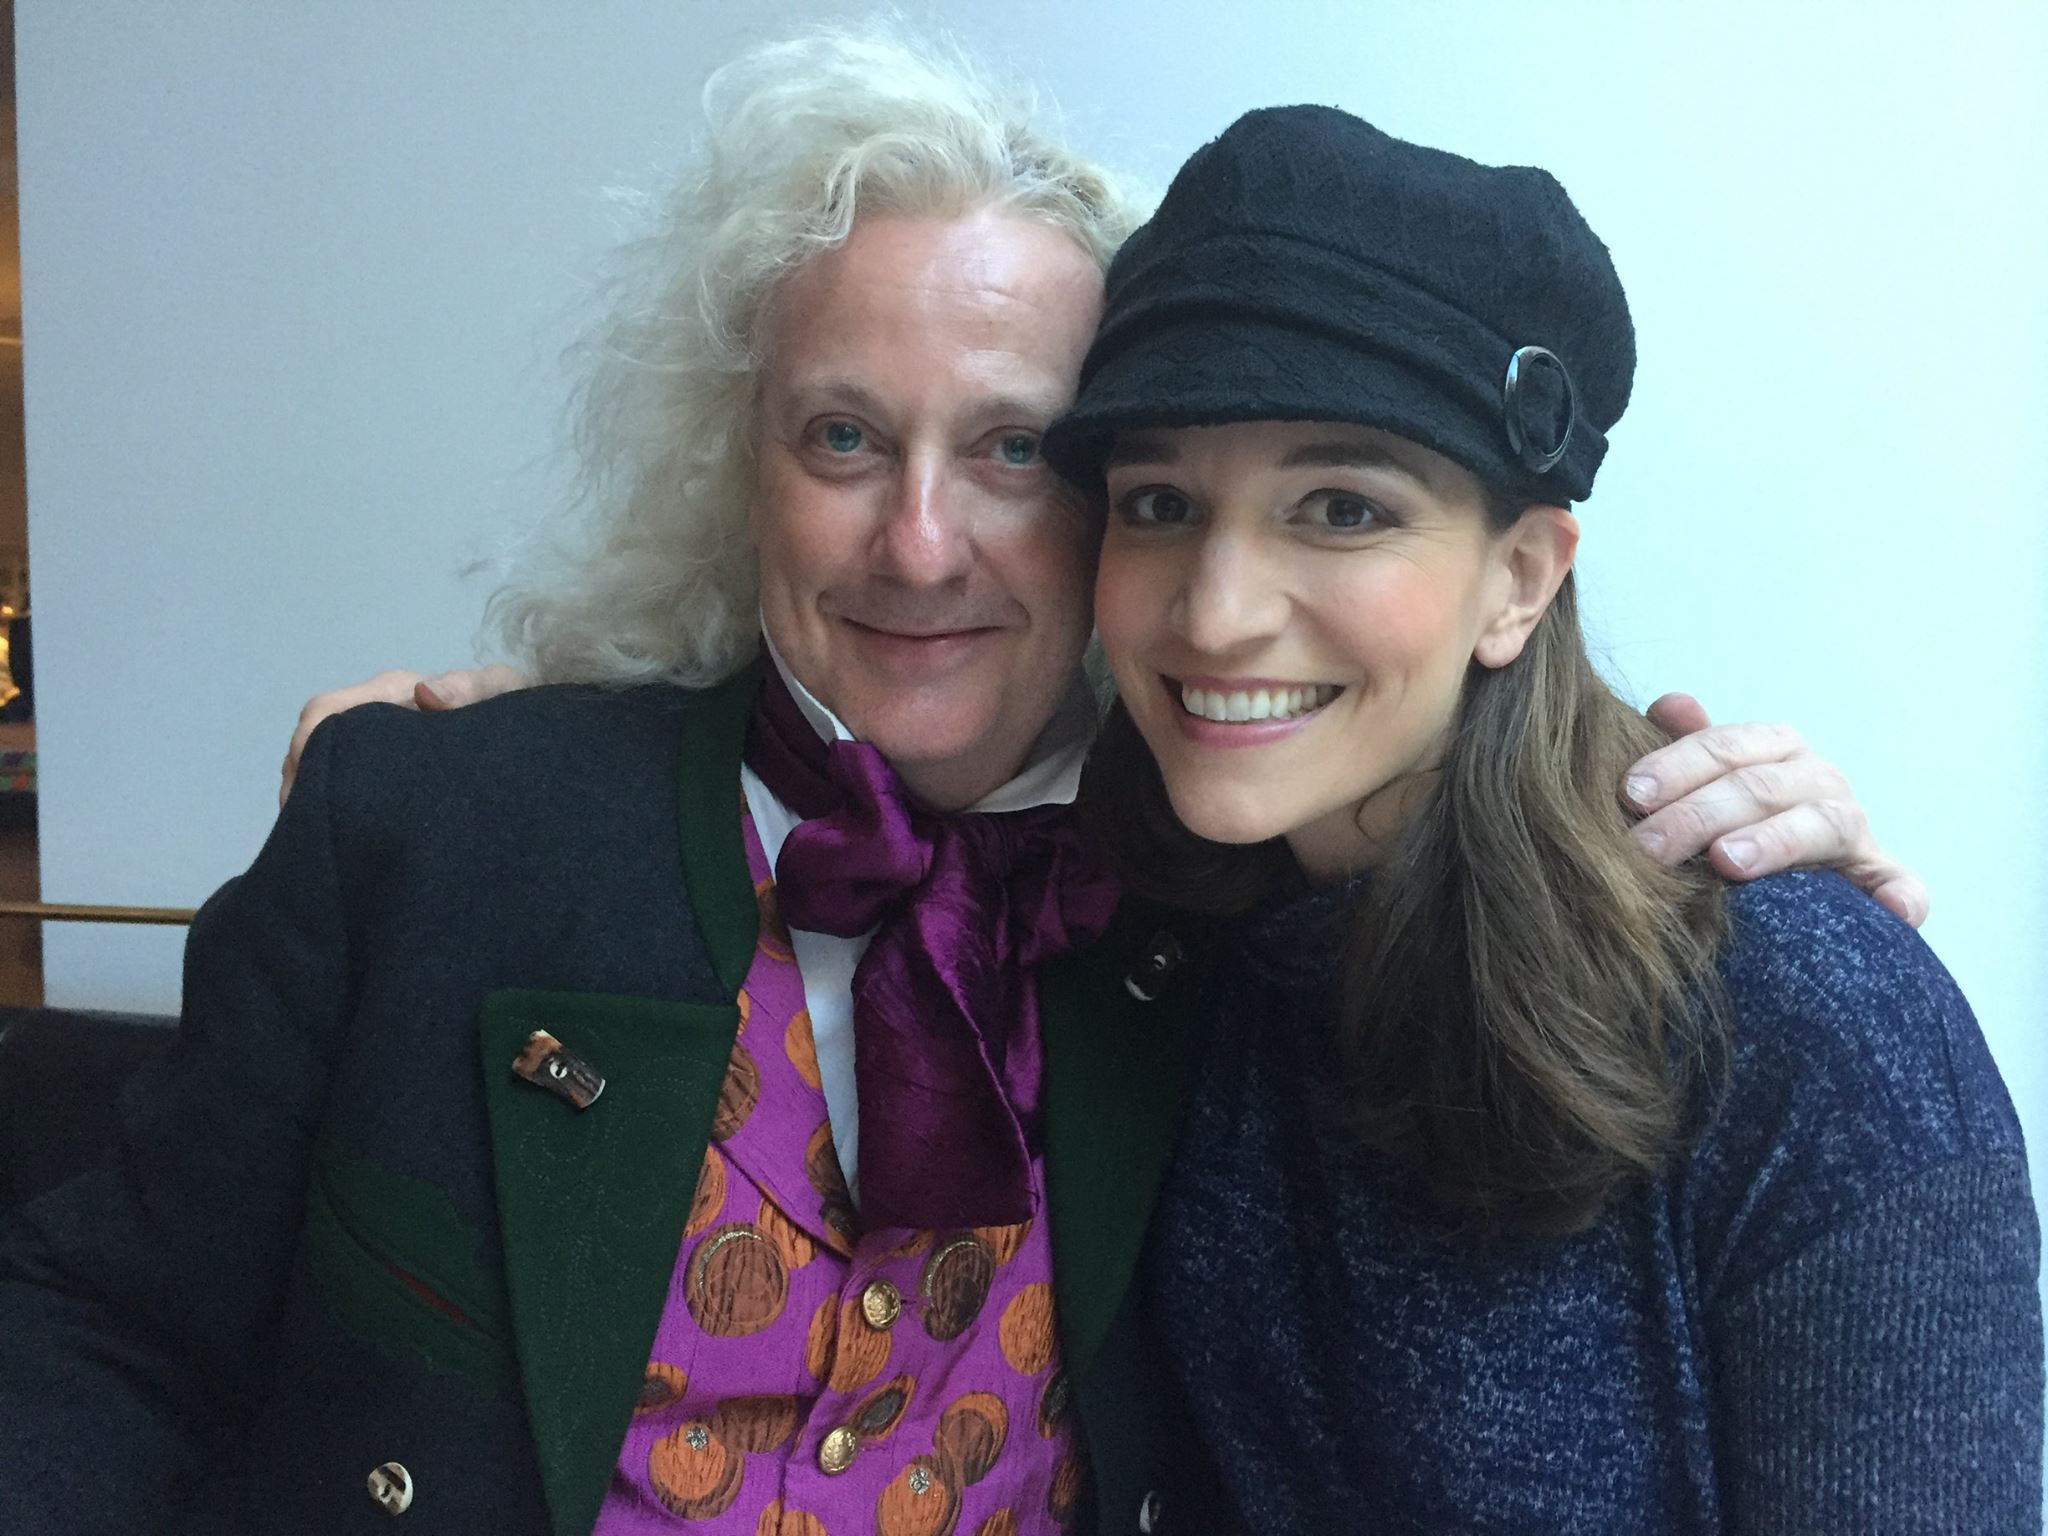 With the lovely Christophe Mortagne after a performance of Hoffmann, LA, 2017